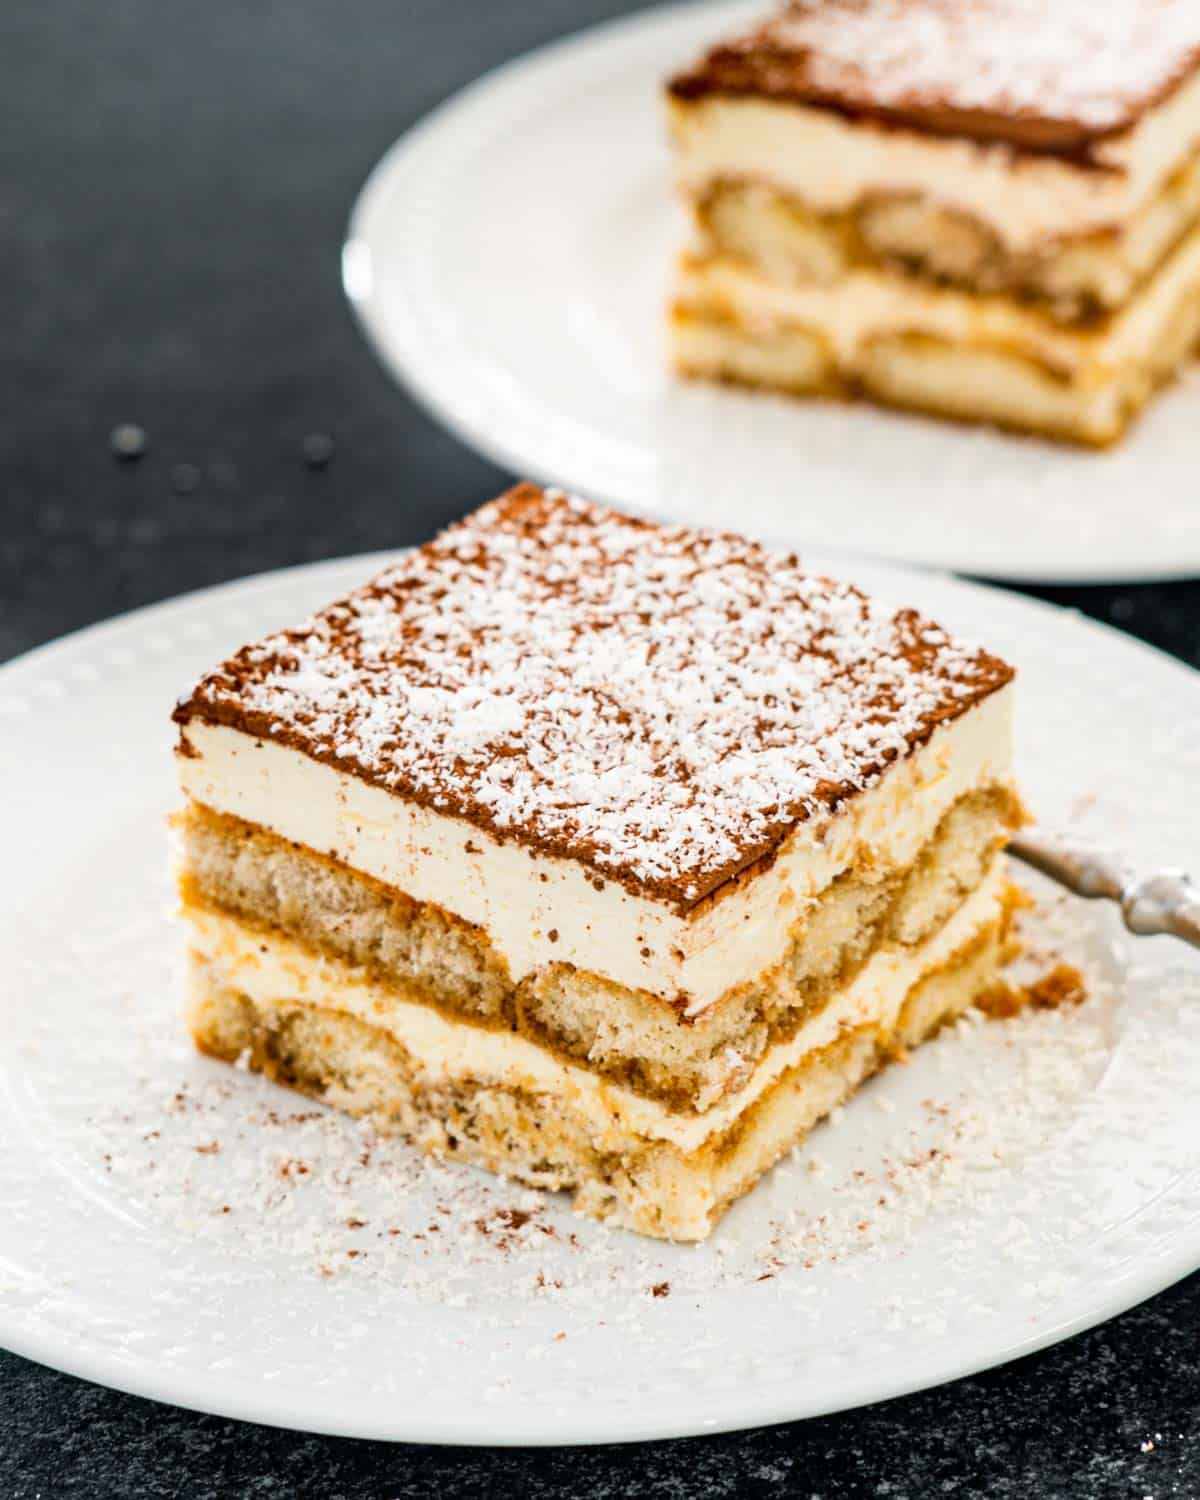 a beautiful slice of tiramisu on a white plate garnished with some shaved chocolate.